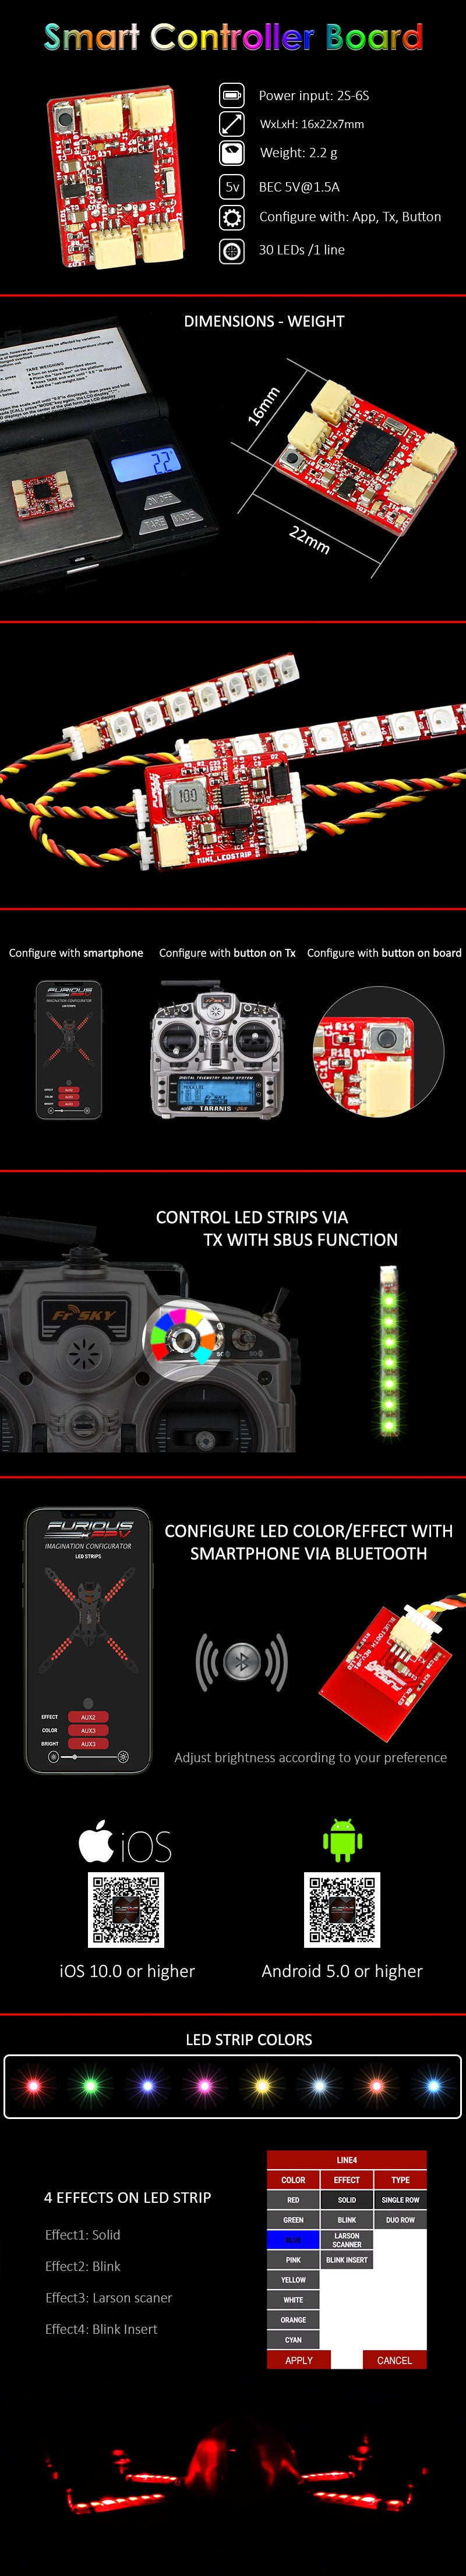 FuriousFPV LED Strip Smart Controller Board with Bluetooth Module (FPV-LSCB-BT)